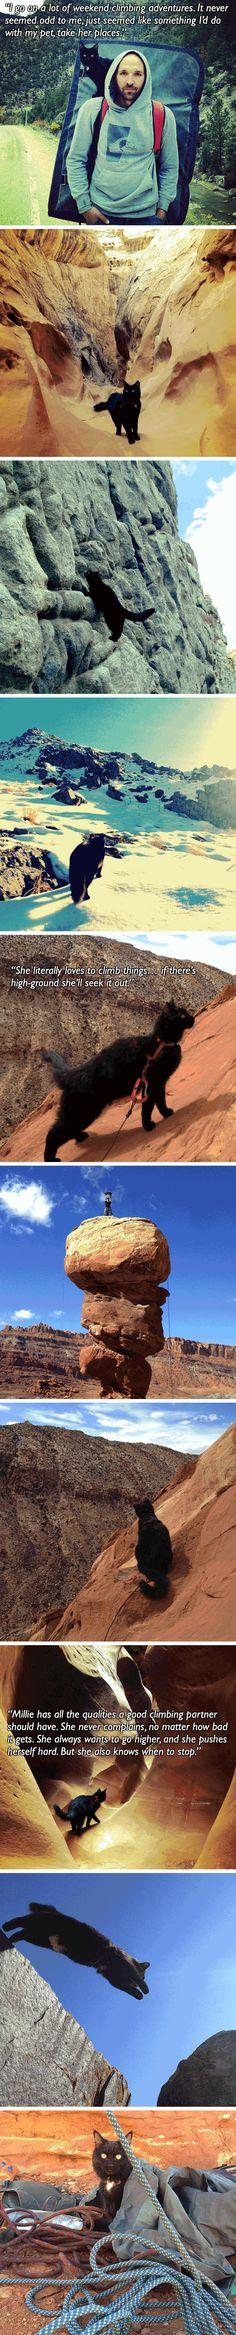 Meet Millie, the mountain climbing cat. | I'm not laughing, but I'm smiling so, so much.